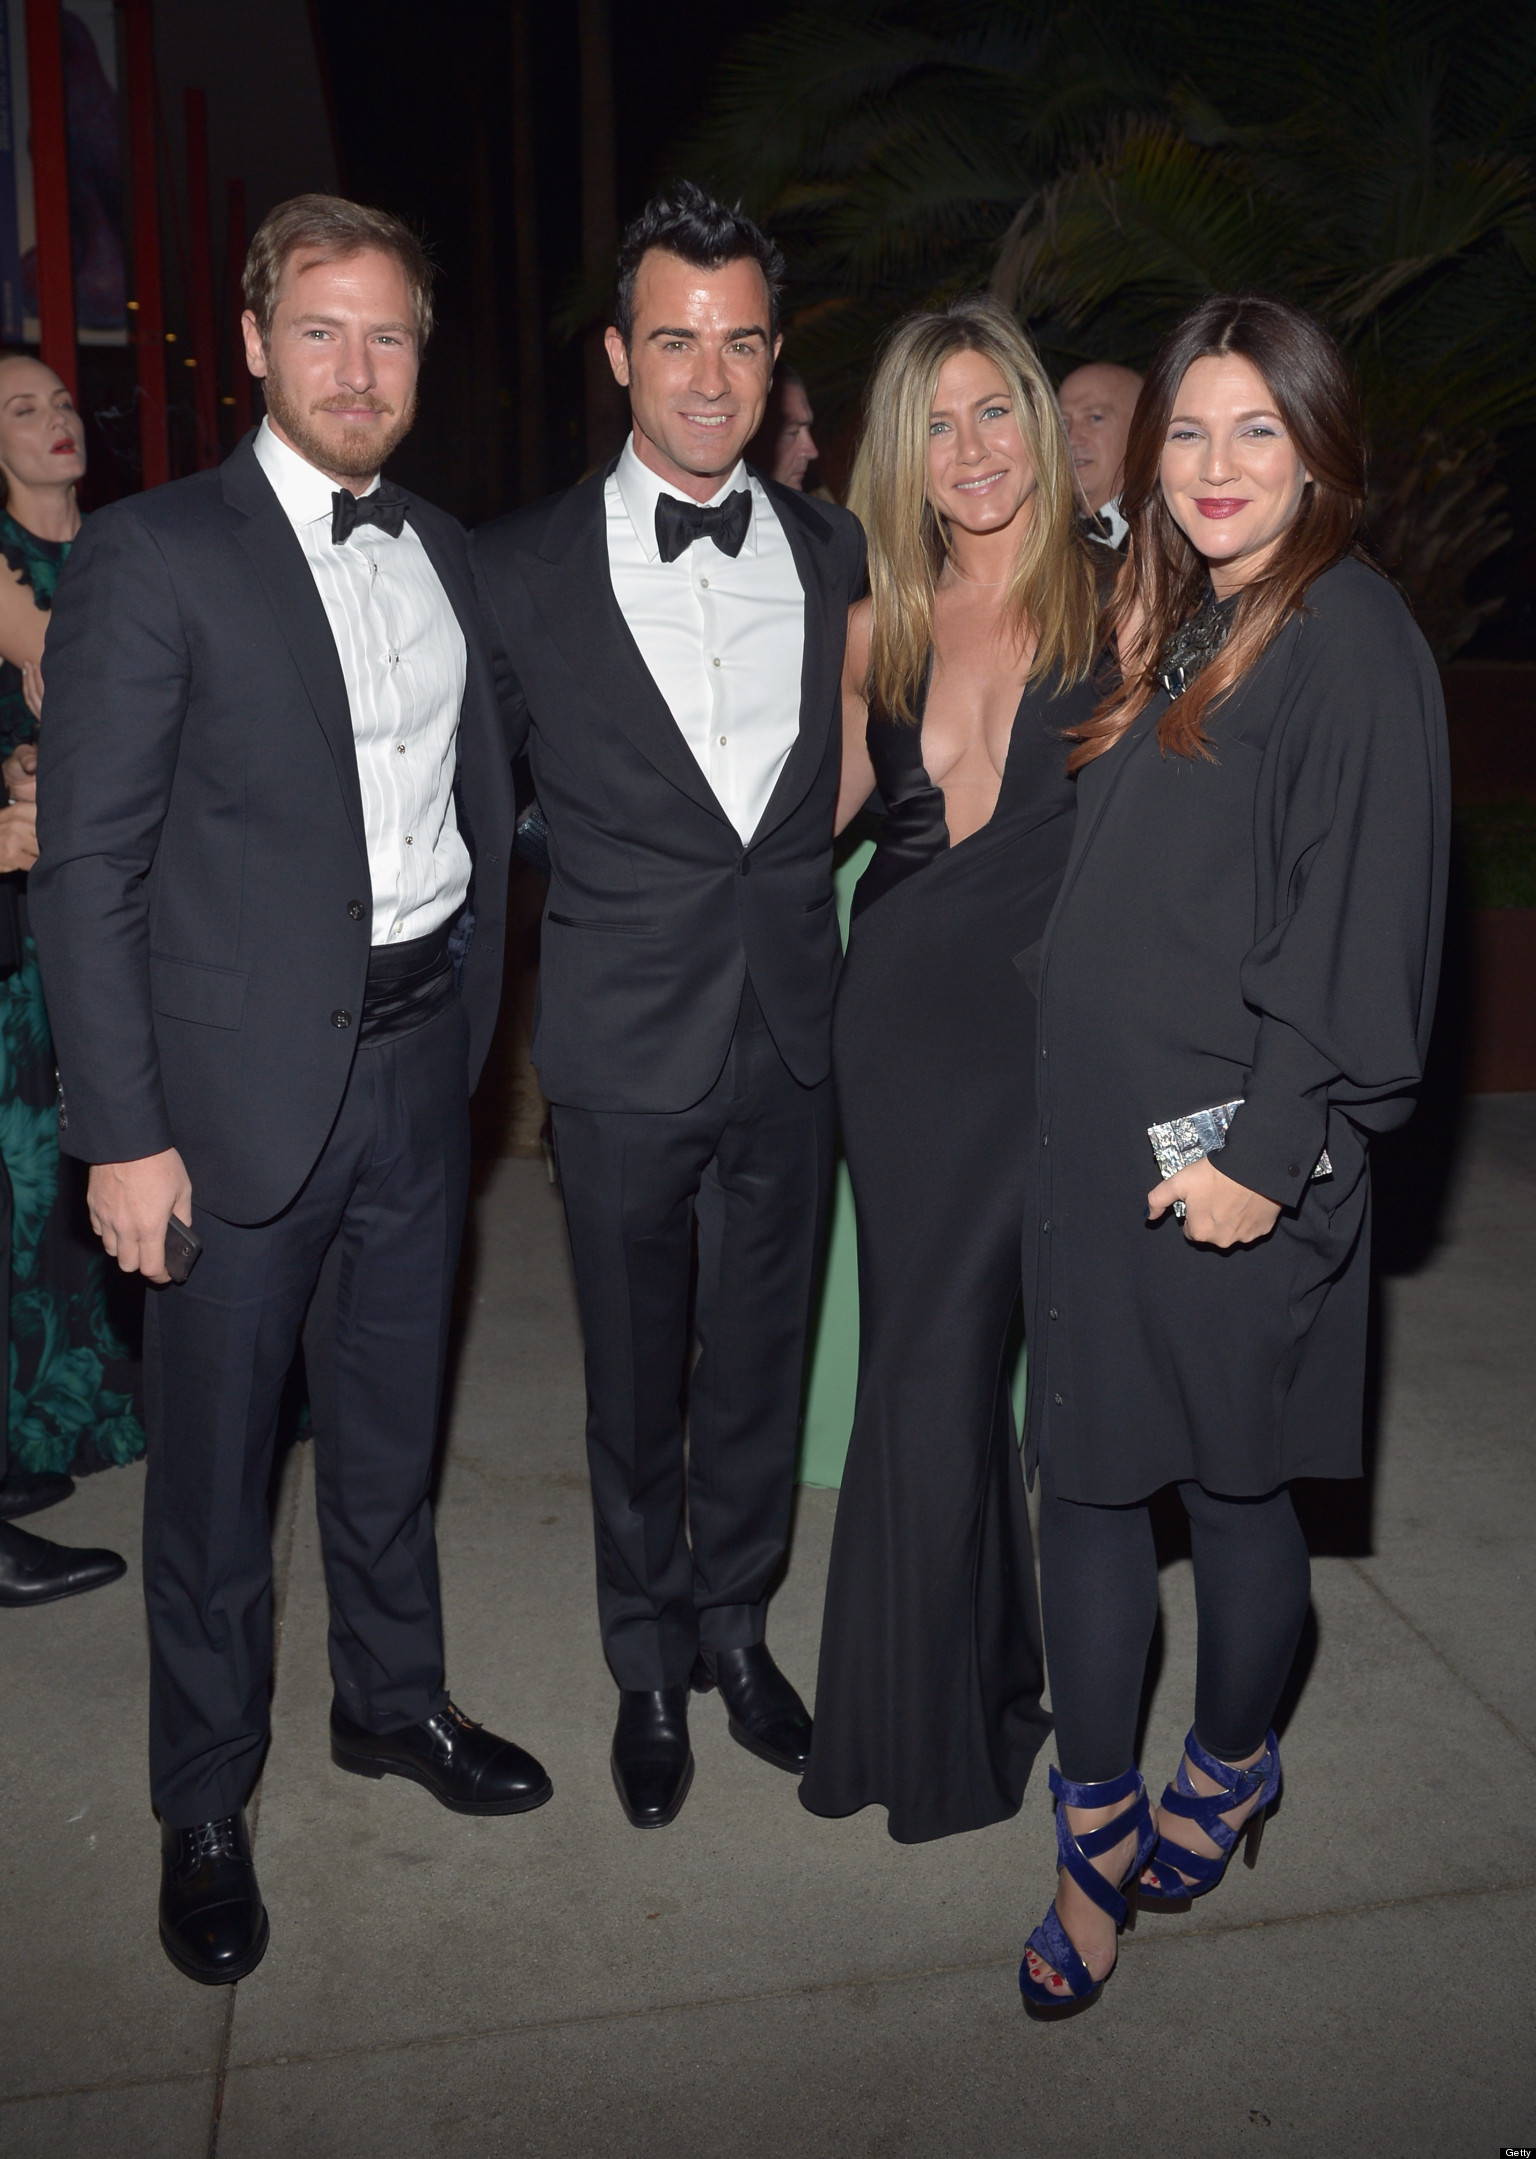 Drew Barrymore Post-Baby Body: Actress Steps Out With ...  Drew Barrymore ...